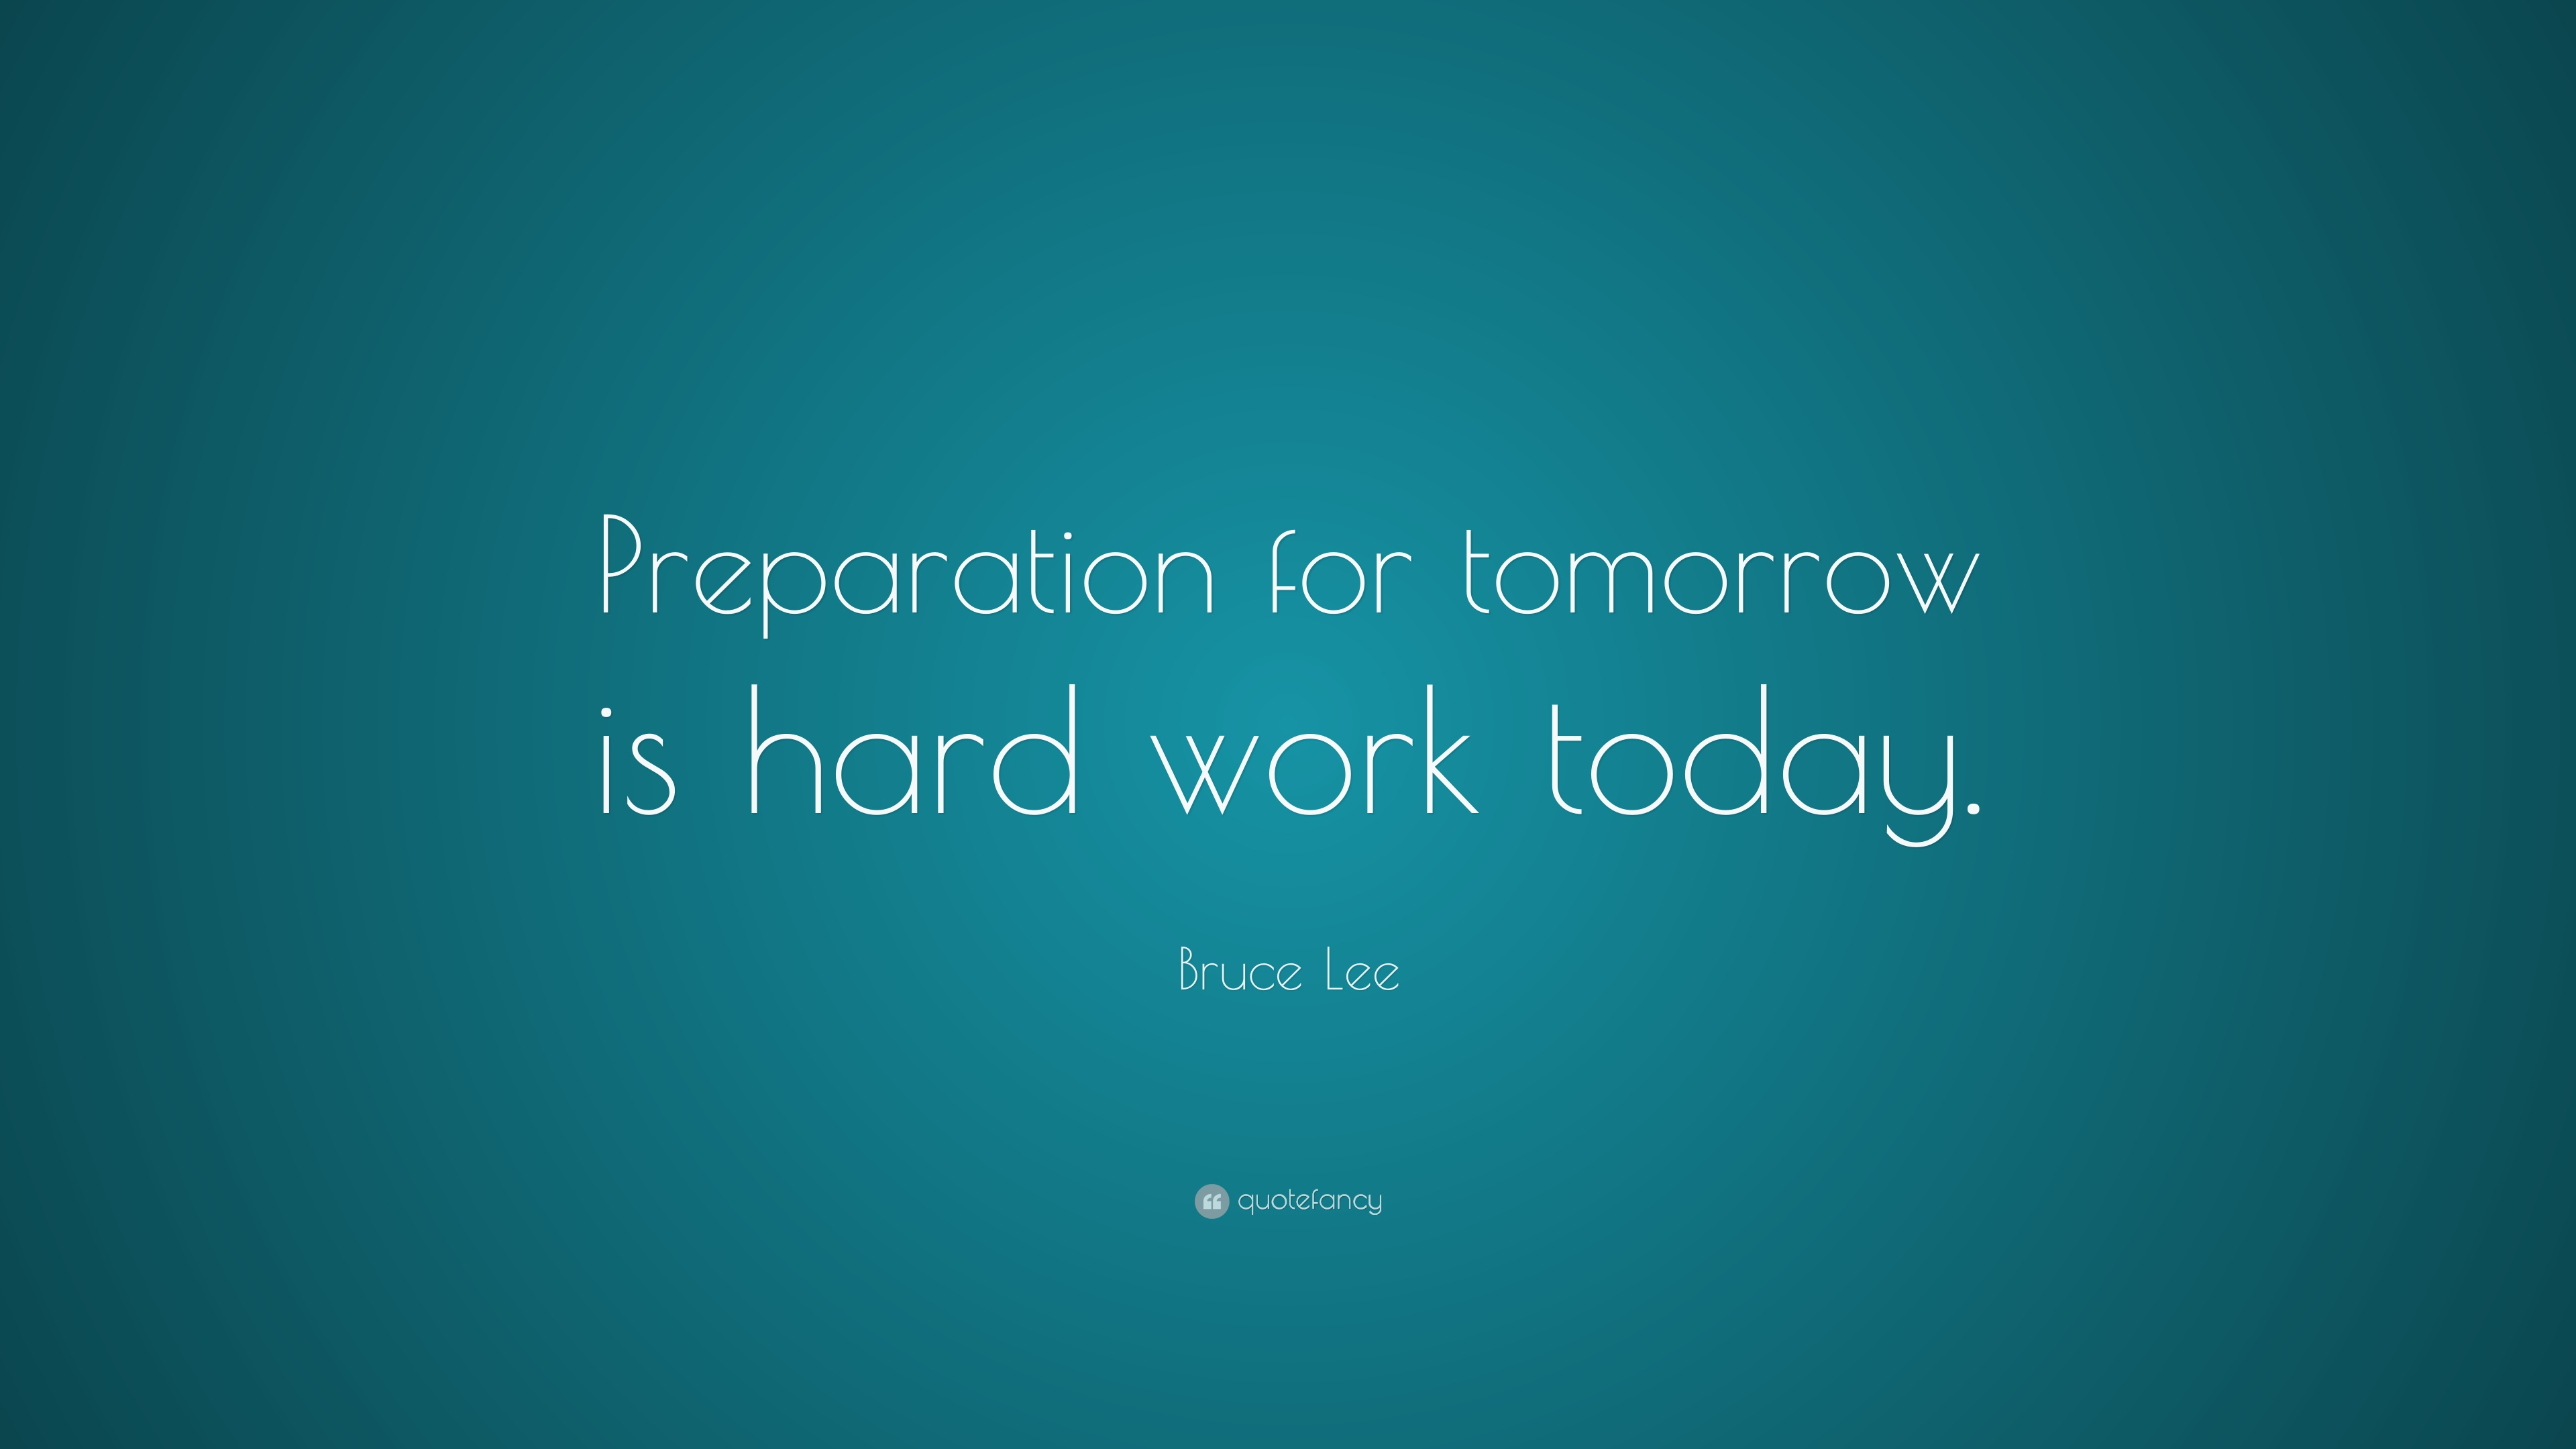 Bruce lee quote preparation for tomorrow is hard work today 25 bruce lee quote preparation for tomorrow is hard work today altavistaventures Gallery